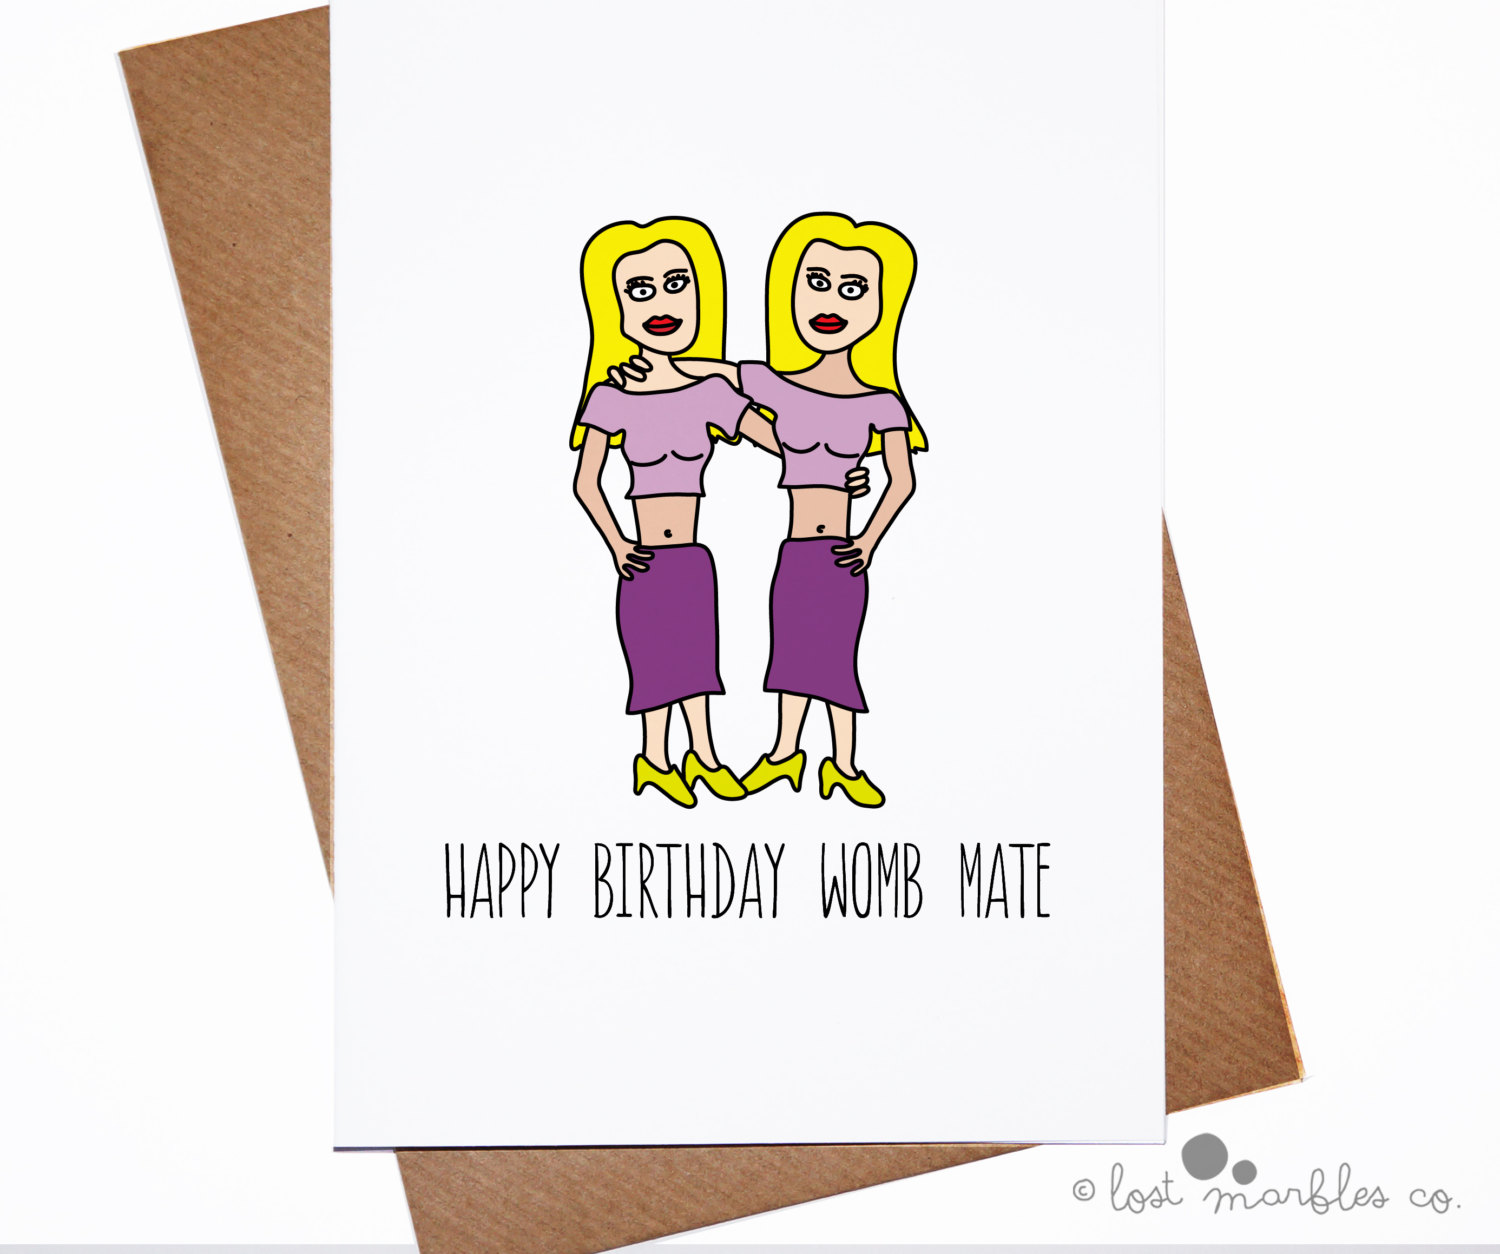 good birthday card drawings ; cute-birthday-cards-twins-girl-yellow-hair-purple-clothings-womb-mate-white-background-simple-photos-draw-greetings-clipart-drawing